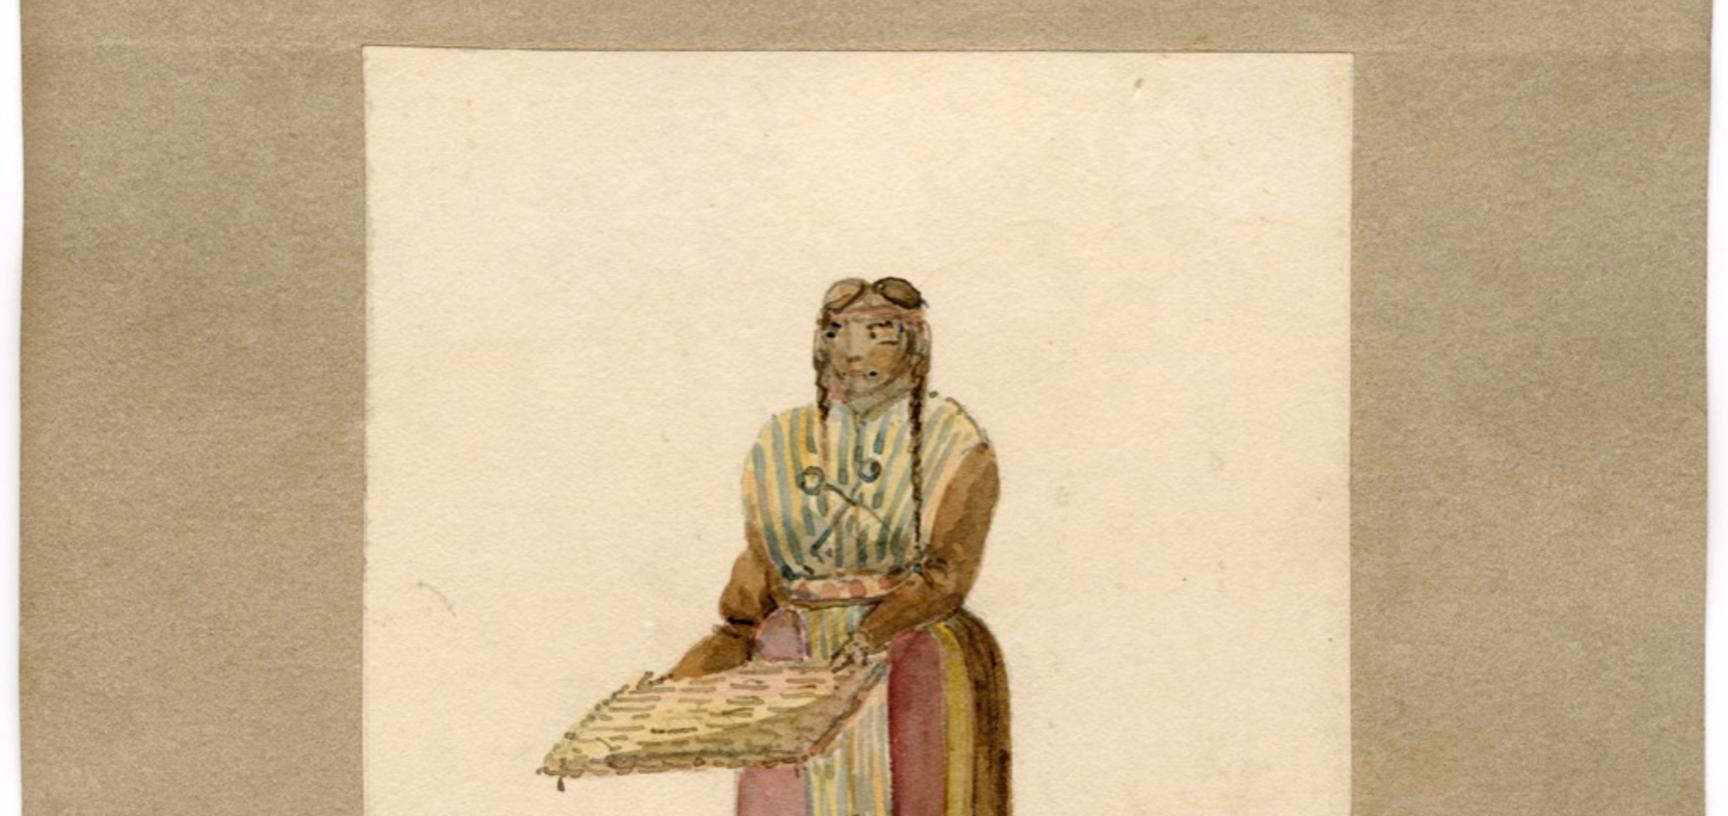 A tortilla-seller, one of a series of Peruvian types from the market in Lima. Carter probably visited Lima when the Seringapatam was anchored in Callao Roads in July 1830, August 1831, and January/February 1832.